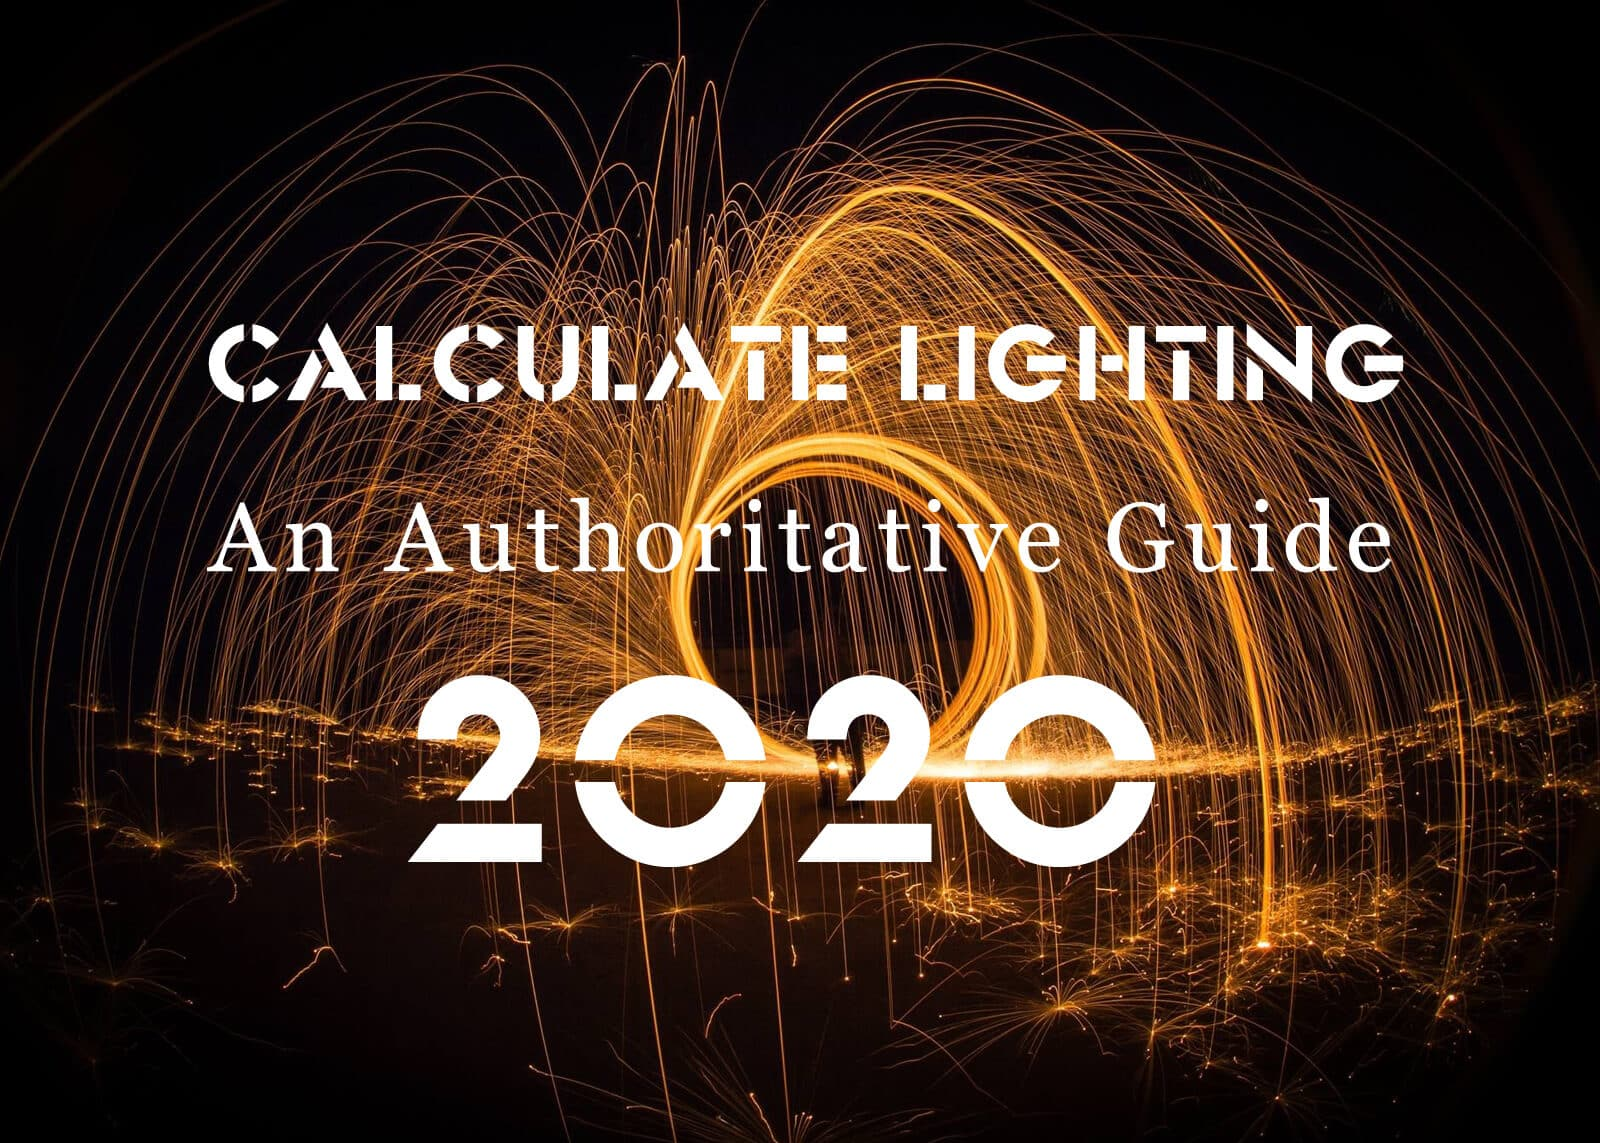 How To Calculate Lighting An Authoritative Guide 2020